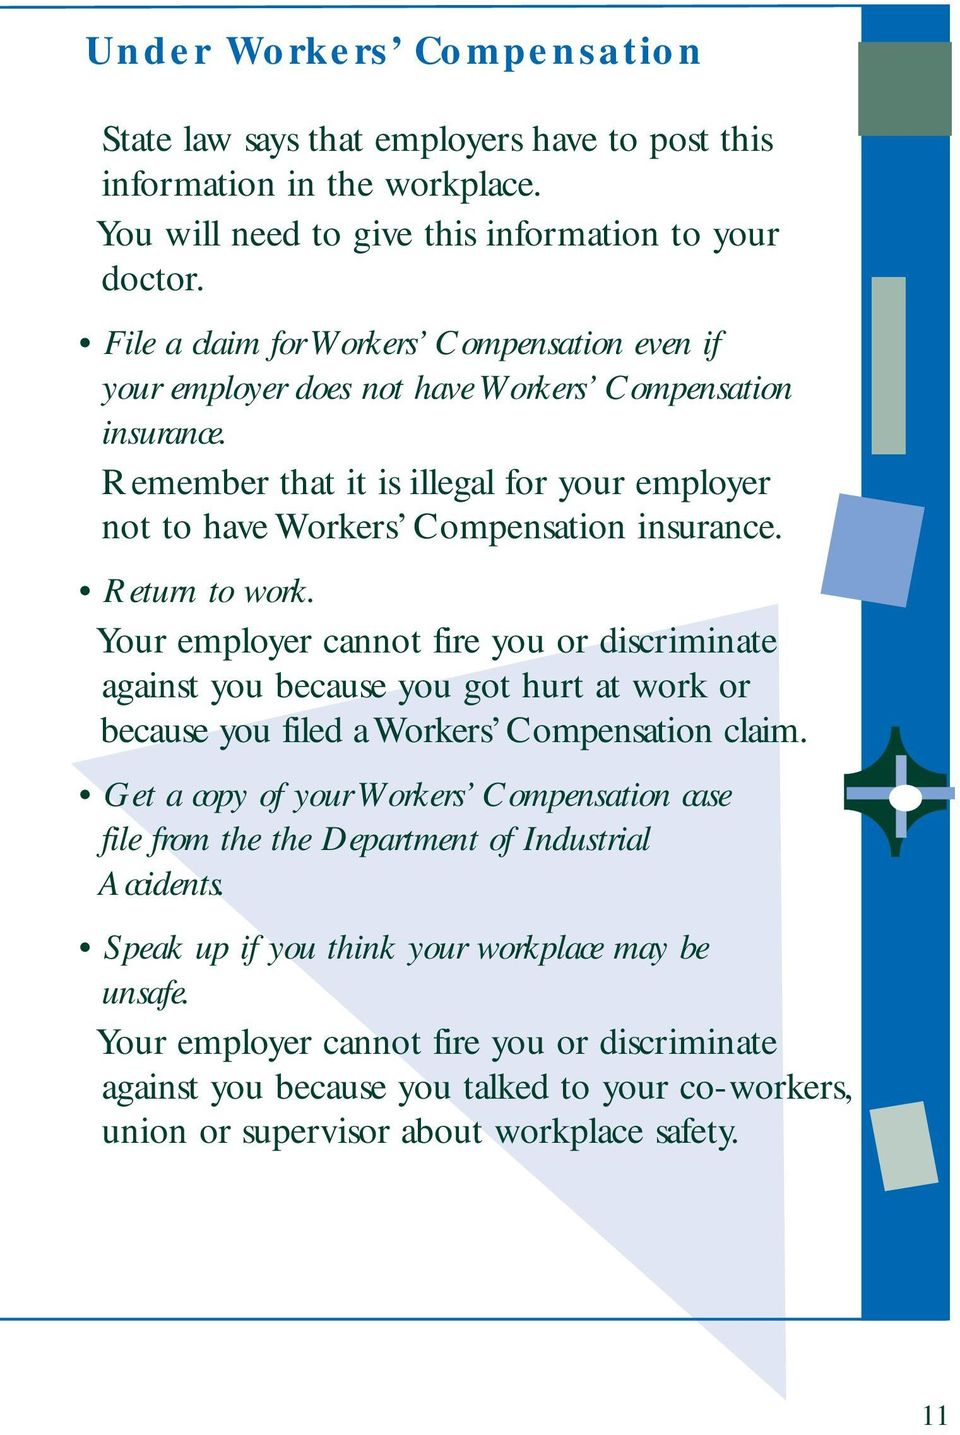 Return to work. Your employer cannot fire you or discriminate against you because you got hurt at work or because you filed a Workers Compensation claim.